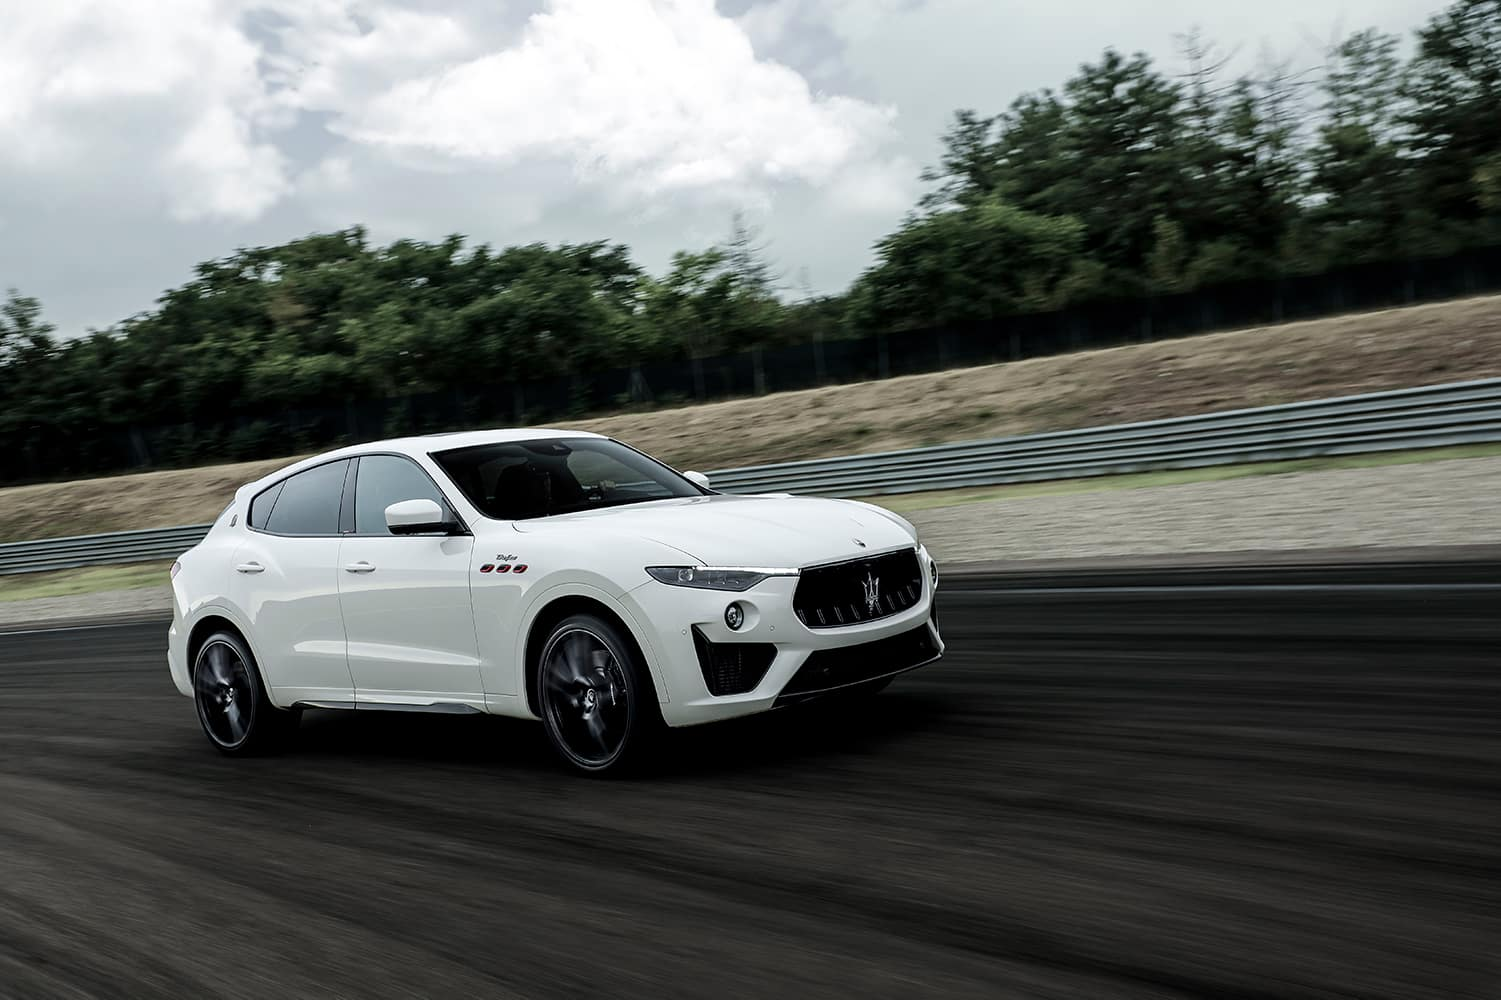 2021 Maserati Levante driving down road | Bennett Maserati of Allentown is a Car Dealership near Wescosville PA in Allentown